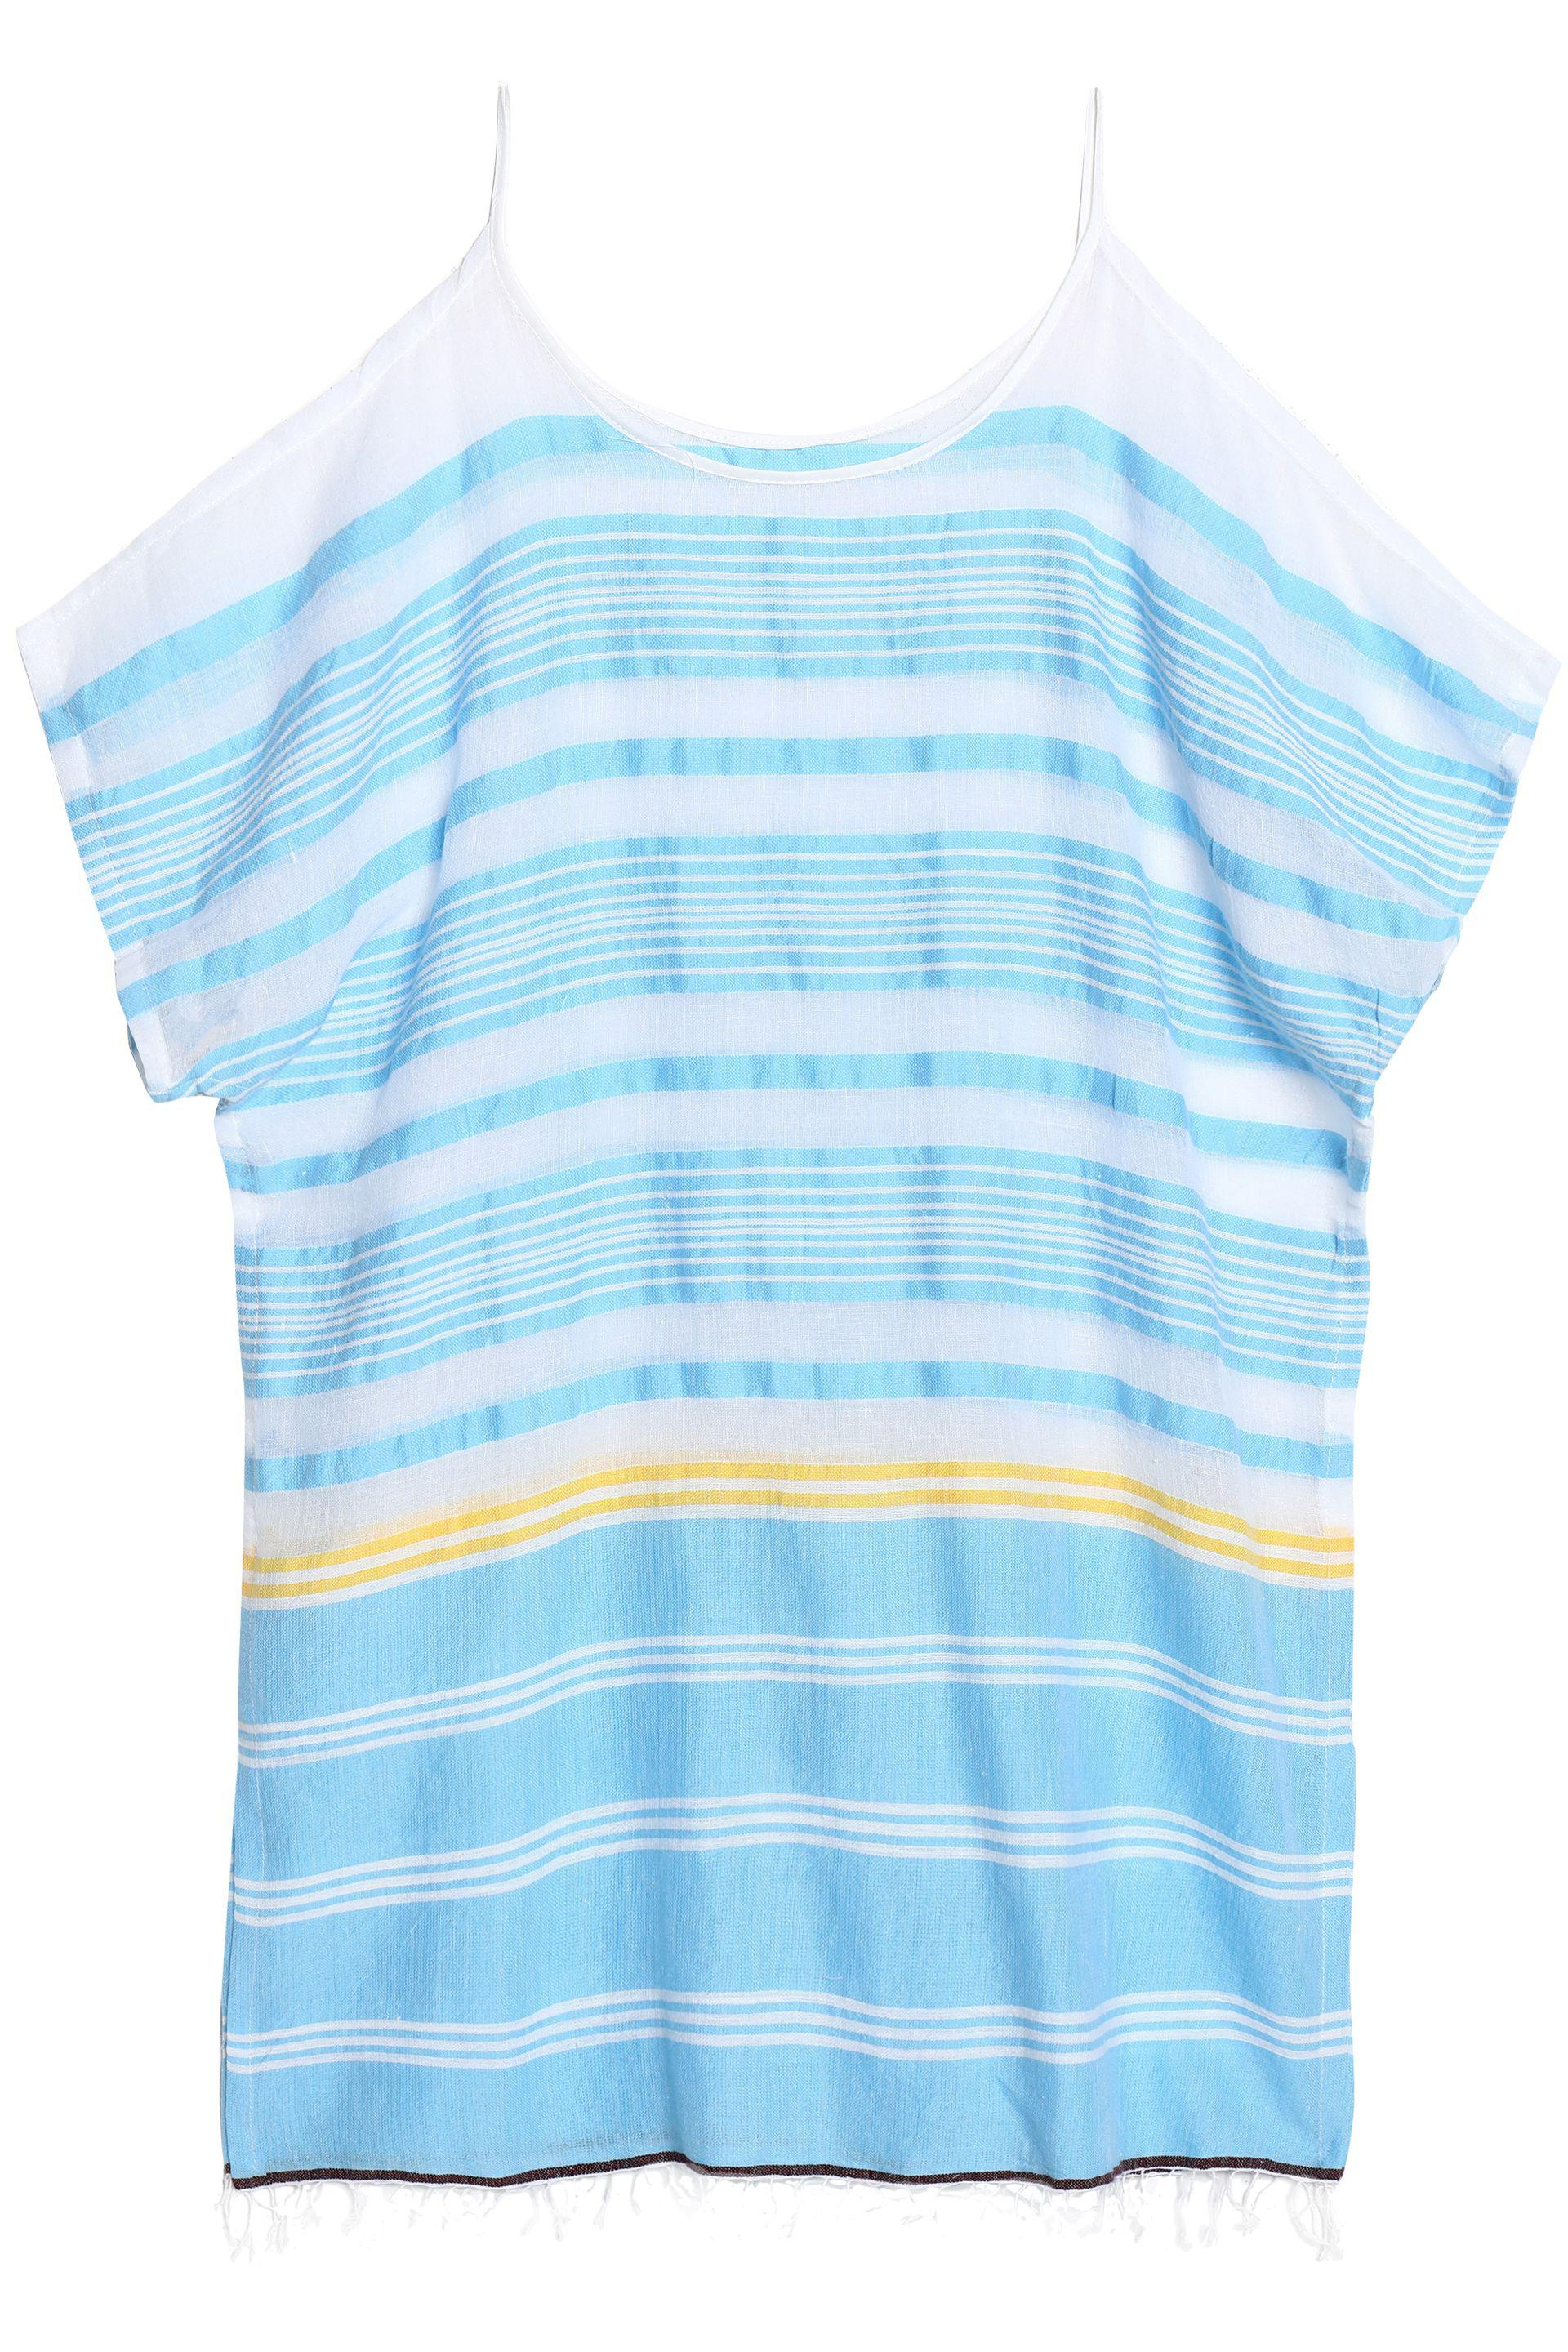 Lemlem Woman Cold-shoulder Striped Cotton-blend Gauze Coverup Light Blue Size L Lemlem Cheapest Free Shipping Looking For Many Kinds Of For Sale Purchase Cheap Online tHgsqzNYzO